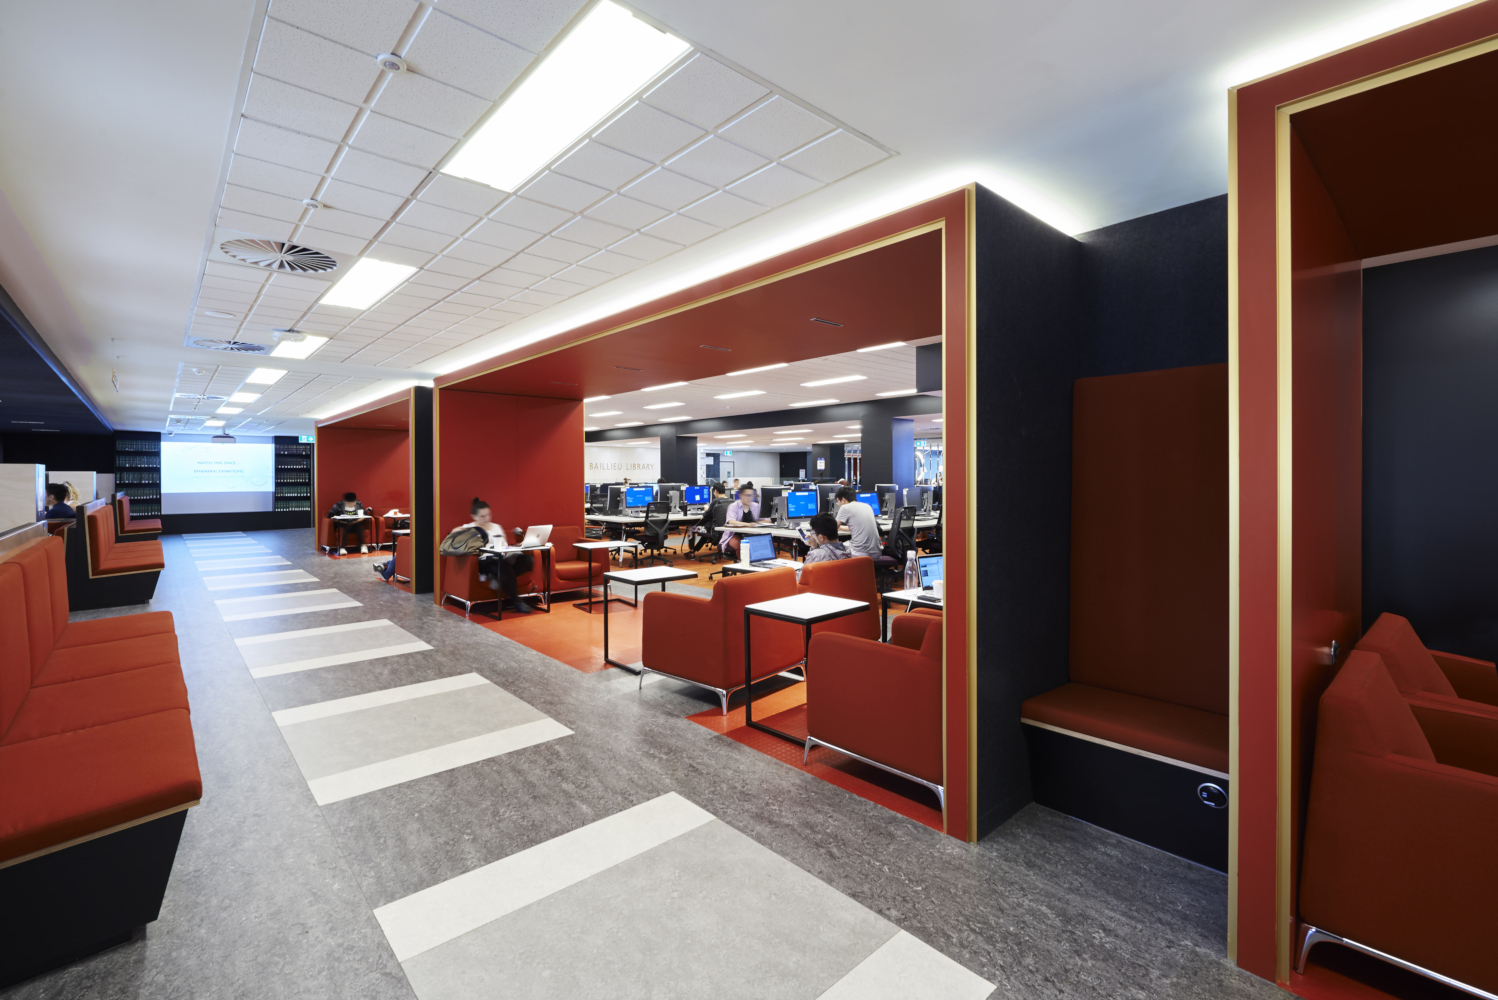 University of Melbourne – Baillieu Library Refurbishment